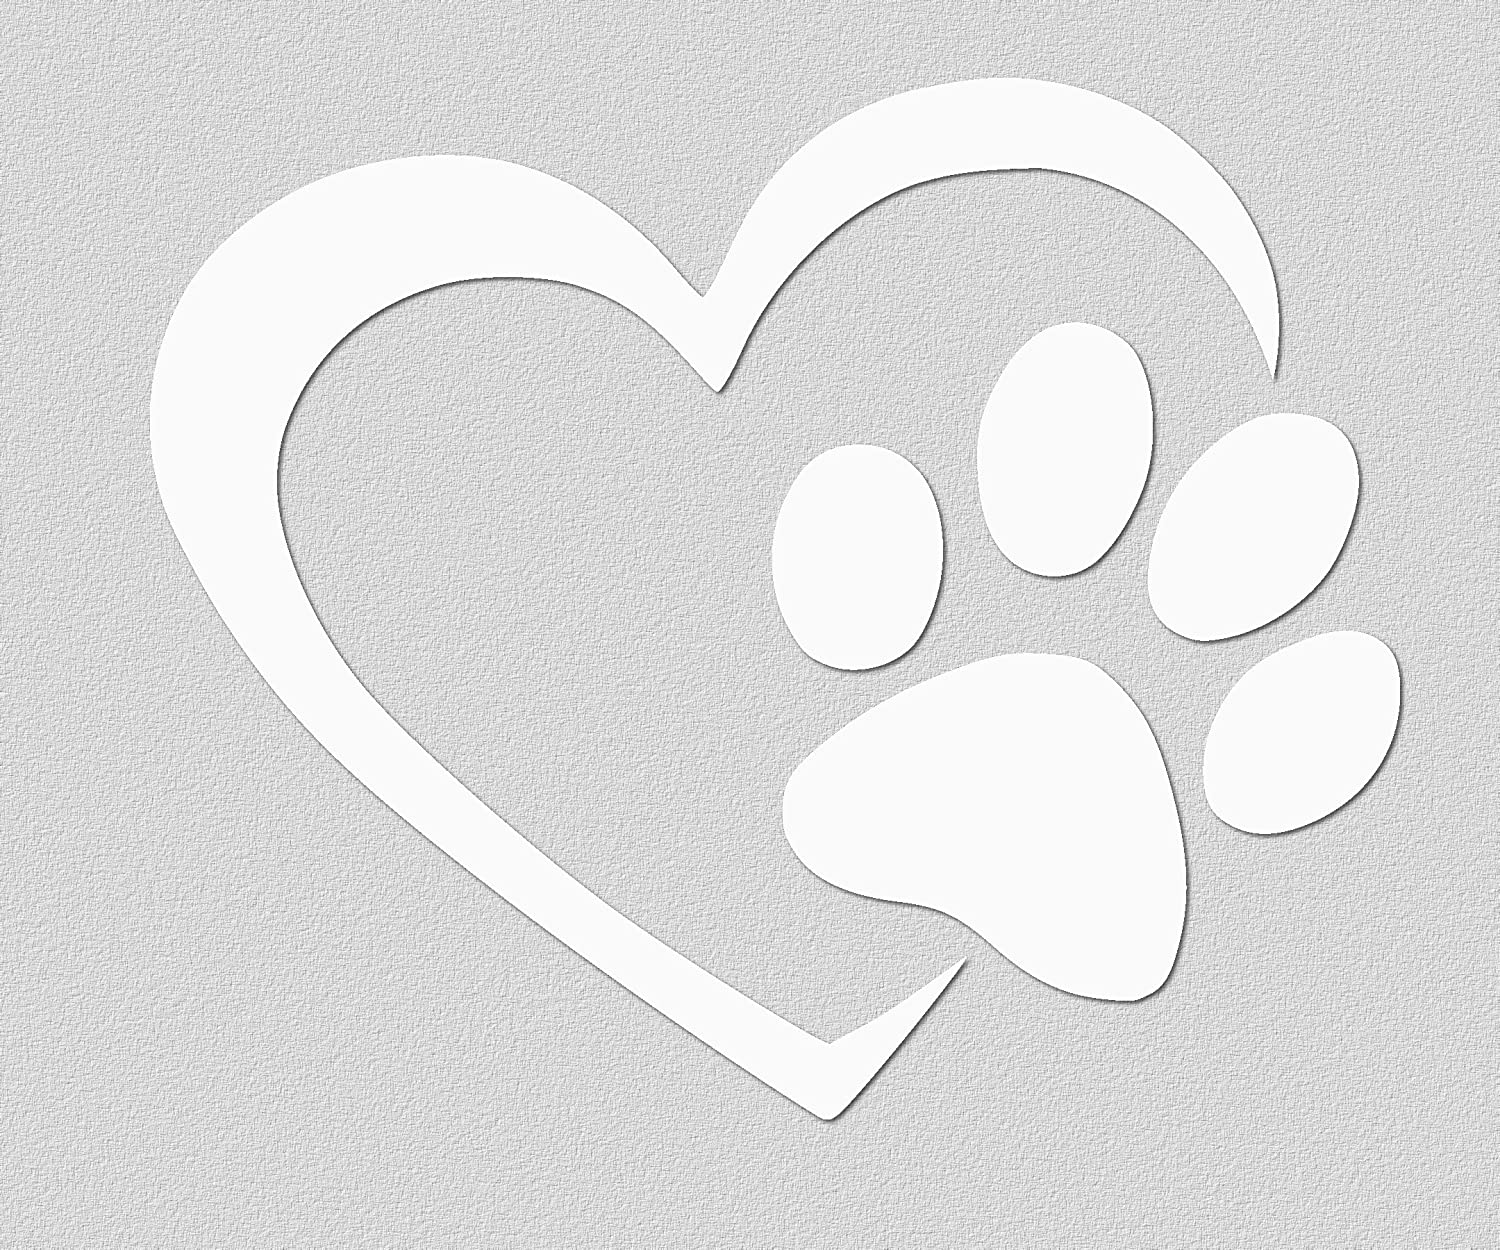 ViaVinyl Dog Paw Heart Decal for dog and animal lovers. For car and truck windows, laptops and Macbooks, iPads and Tablets, iPhones and cell phones, Yeti and Rtic tumbler cups, and more!